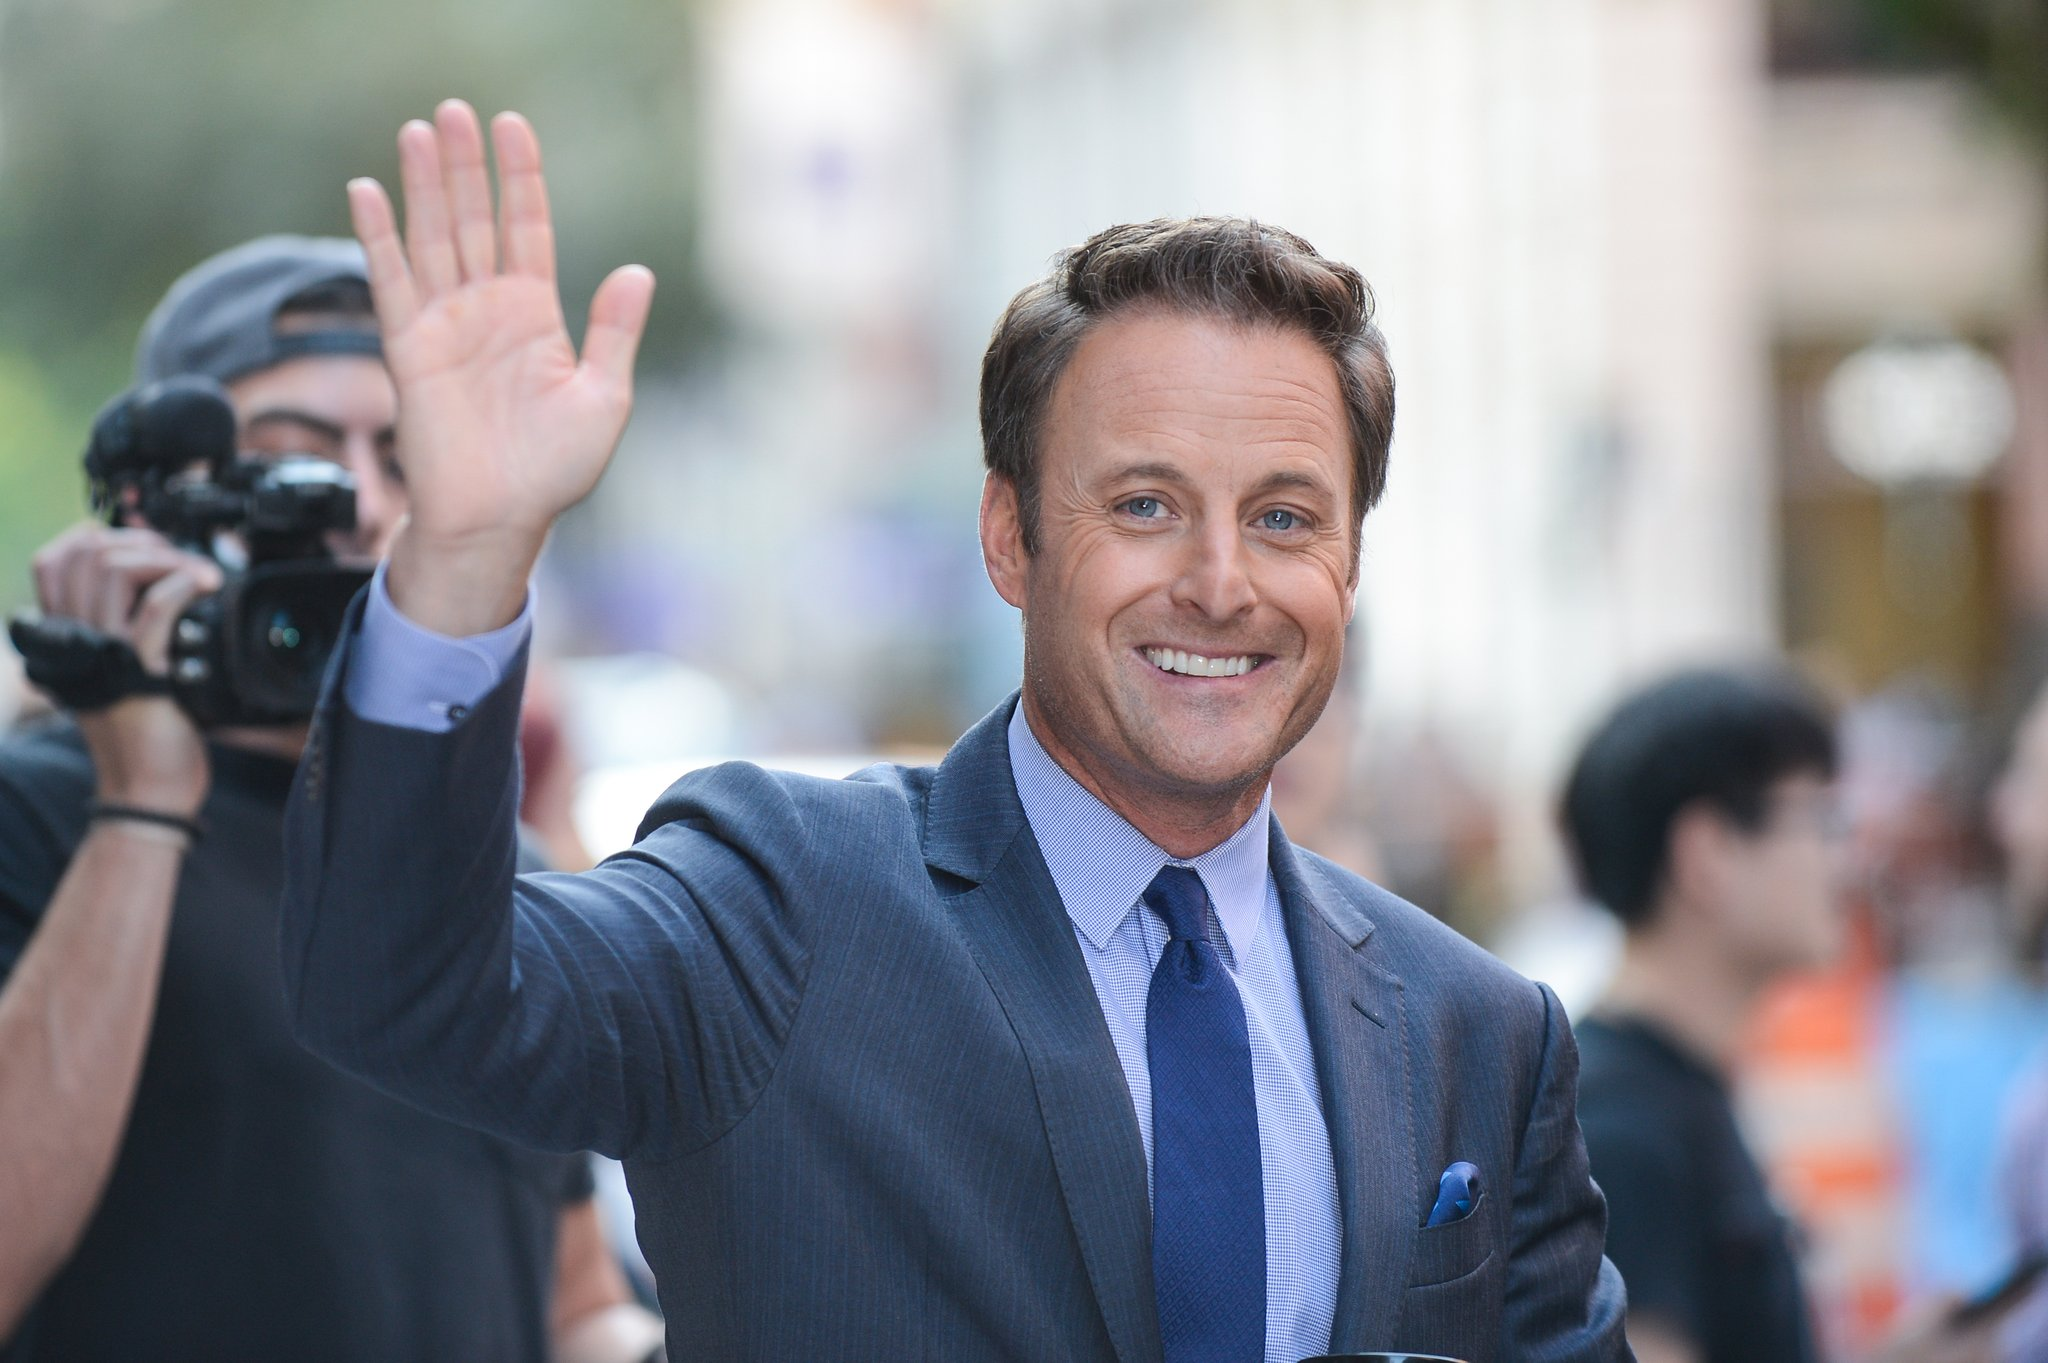 Chris Harrison is presently dating his girlfriend Lauren Zima.